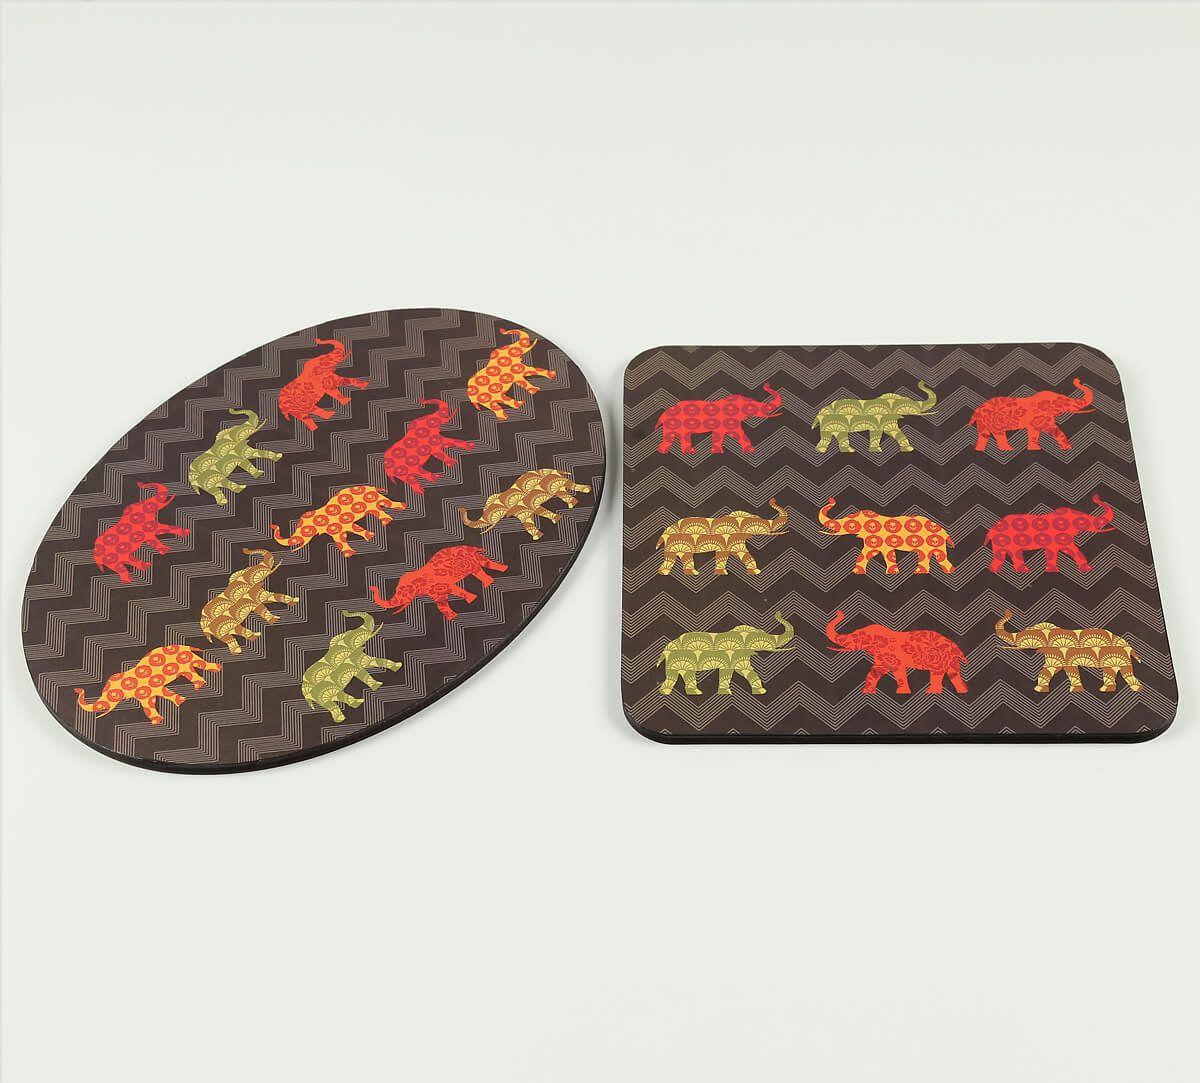 India Circus by Krsnaa Mehta Tusker Delight Trivet Set of 2